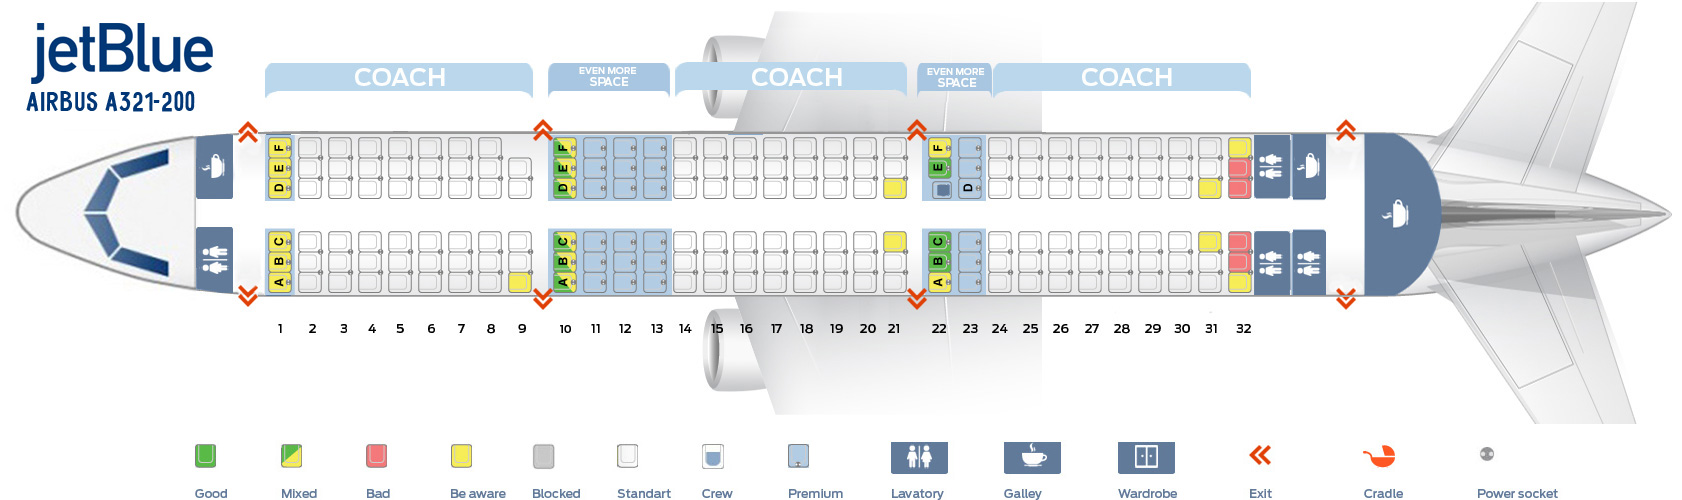 Cabin Con Uration V1 Seat Map And Seating Chart Airbus A321 200. Cabin Con Uration V1 Seat Map And Seating Chart Airbus A321 200 Jetblue Airways. Seat. Airplane Seating Schematic At Scoala.co